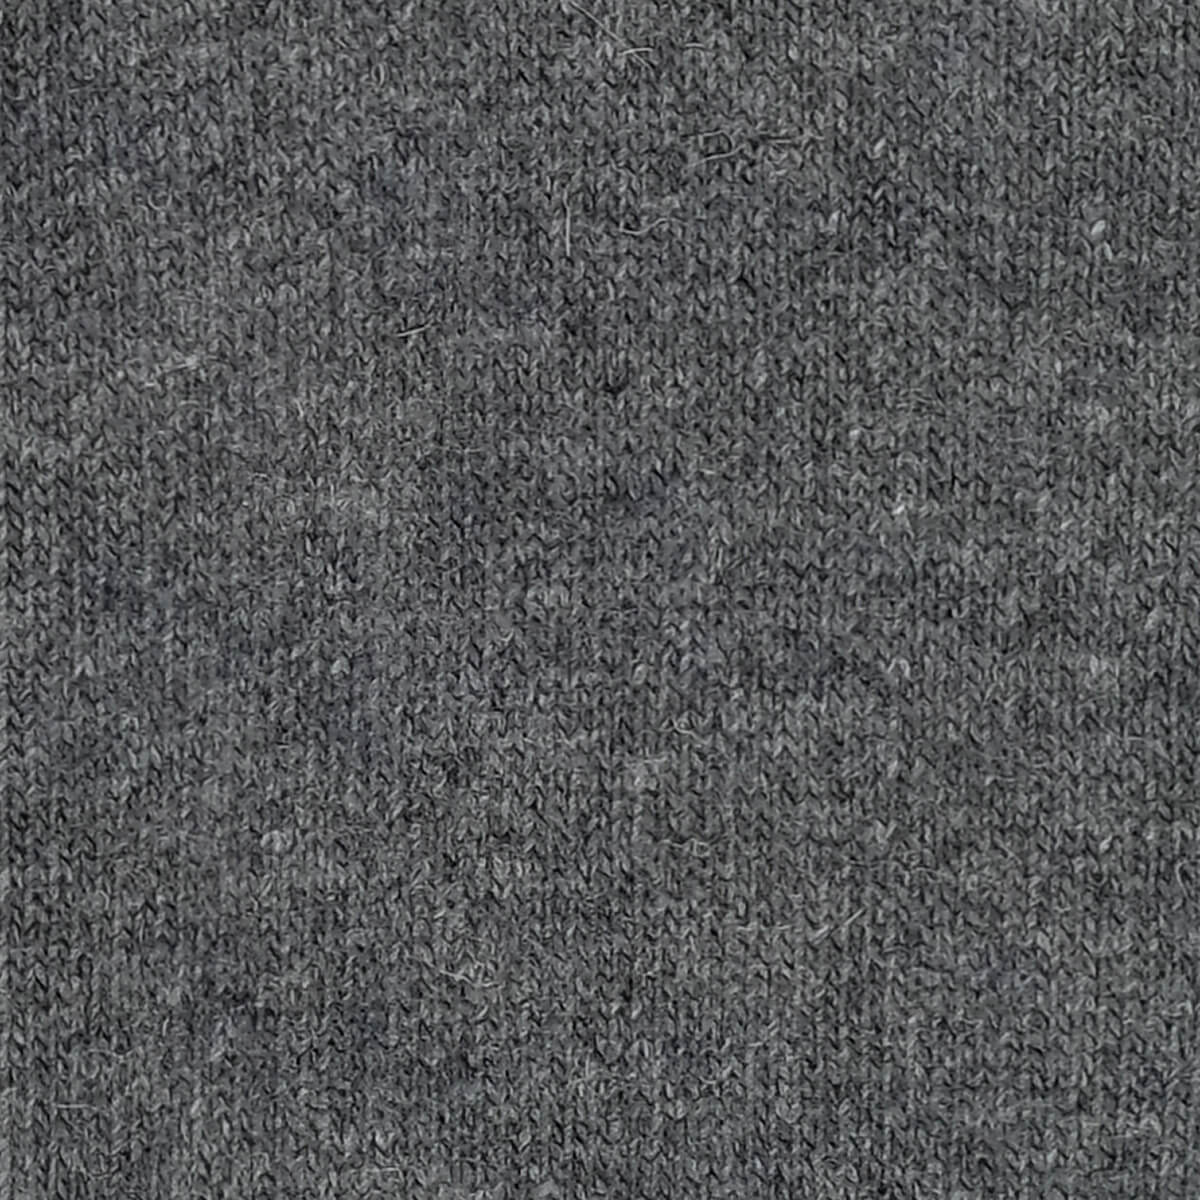 Mens Socks - Cashmere x Merino - Dark Grey⎪Etiquette Clothiers